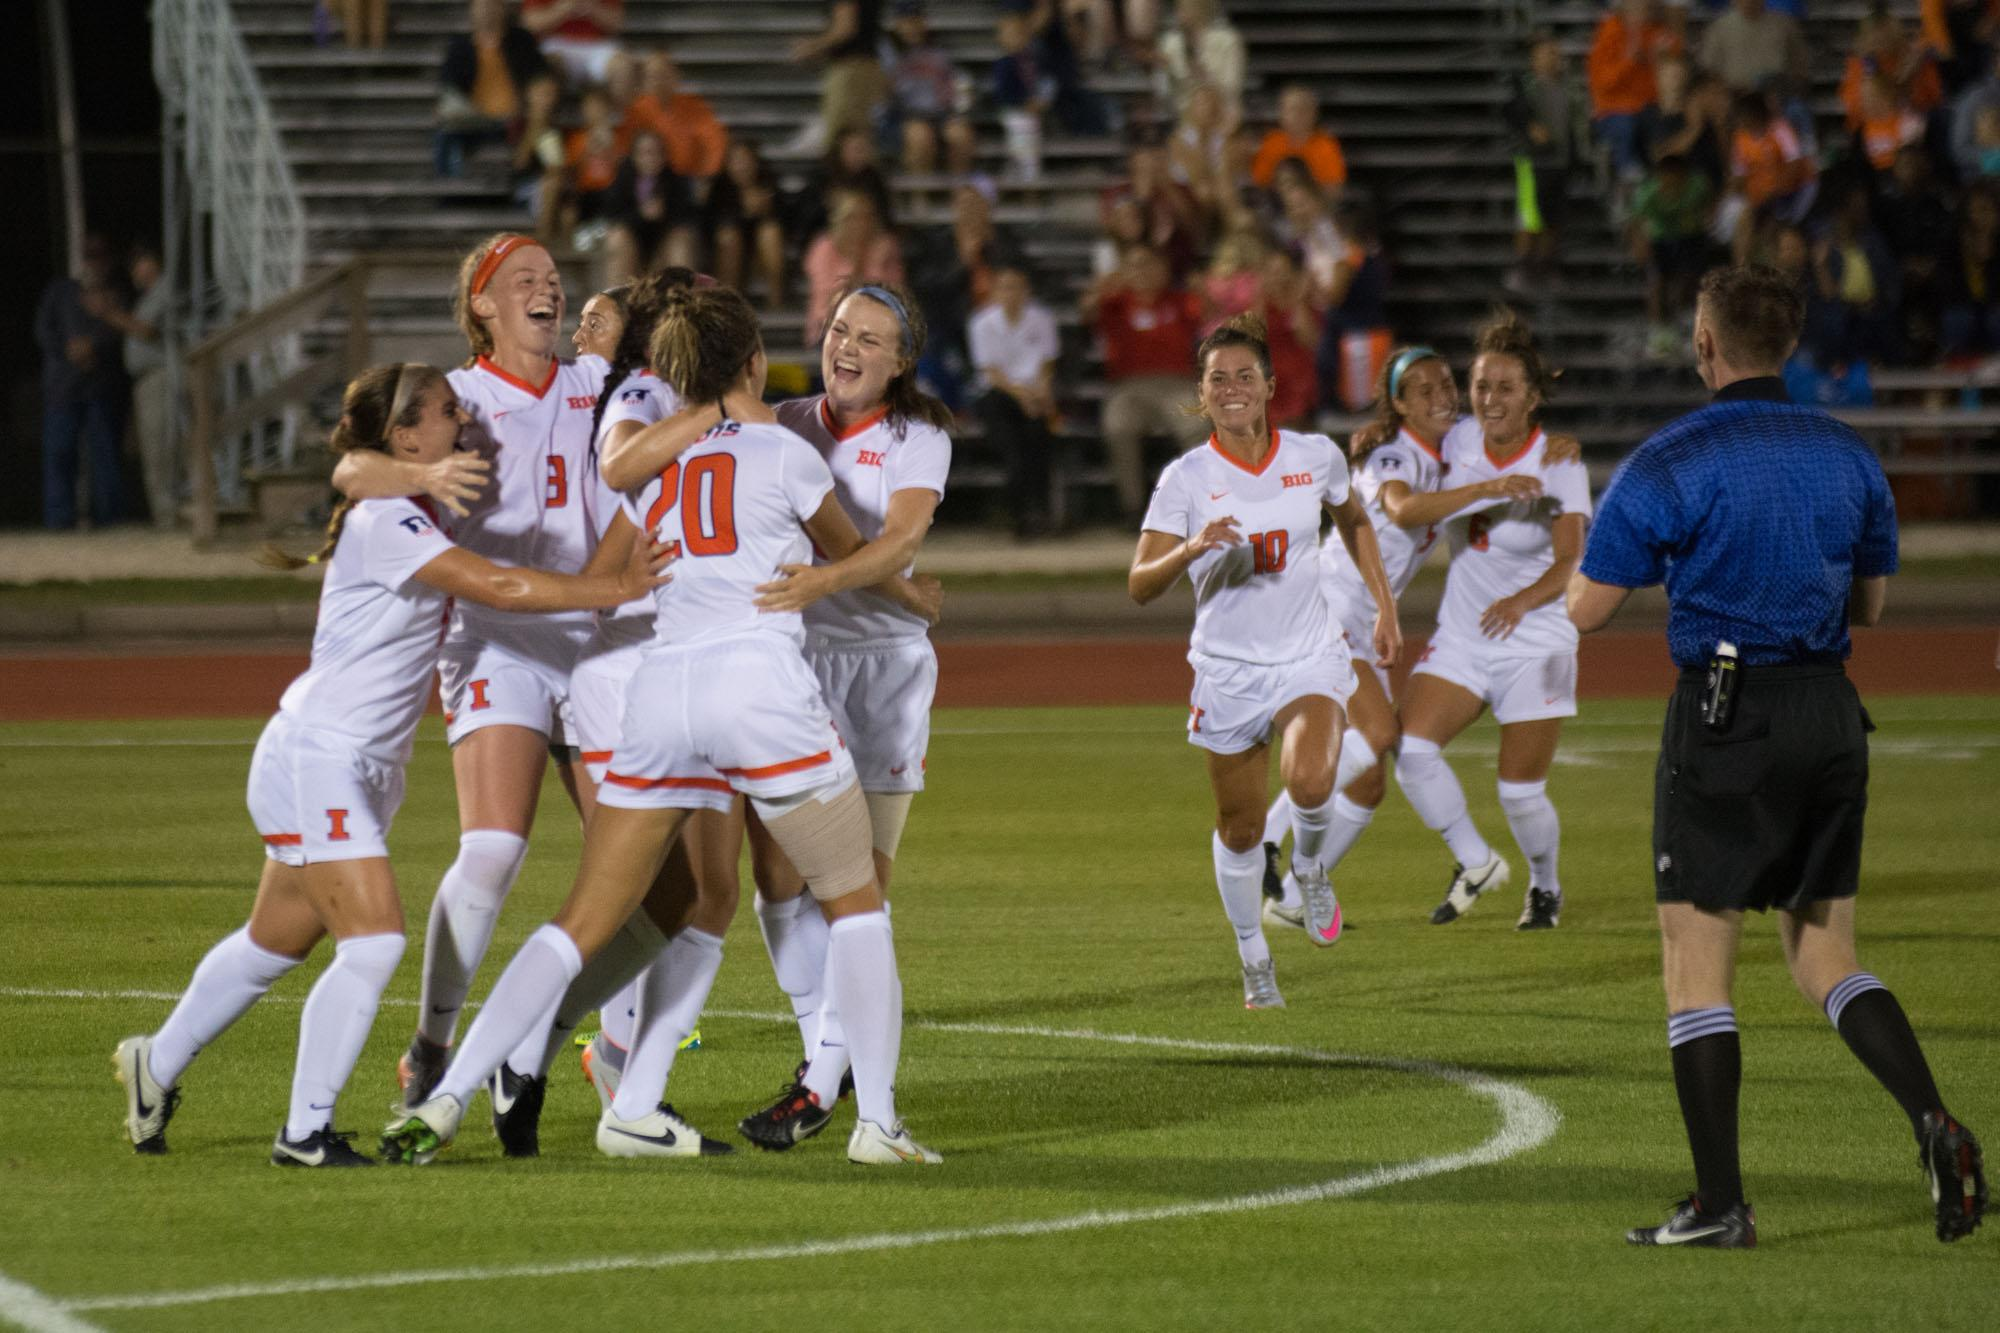 Illinois players celebrate after a goal during Friday's win over TCU.